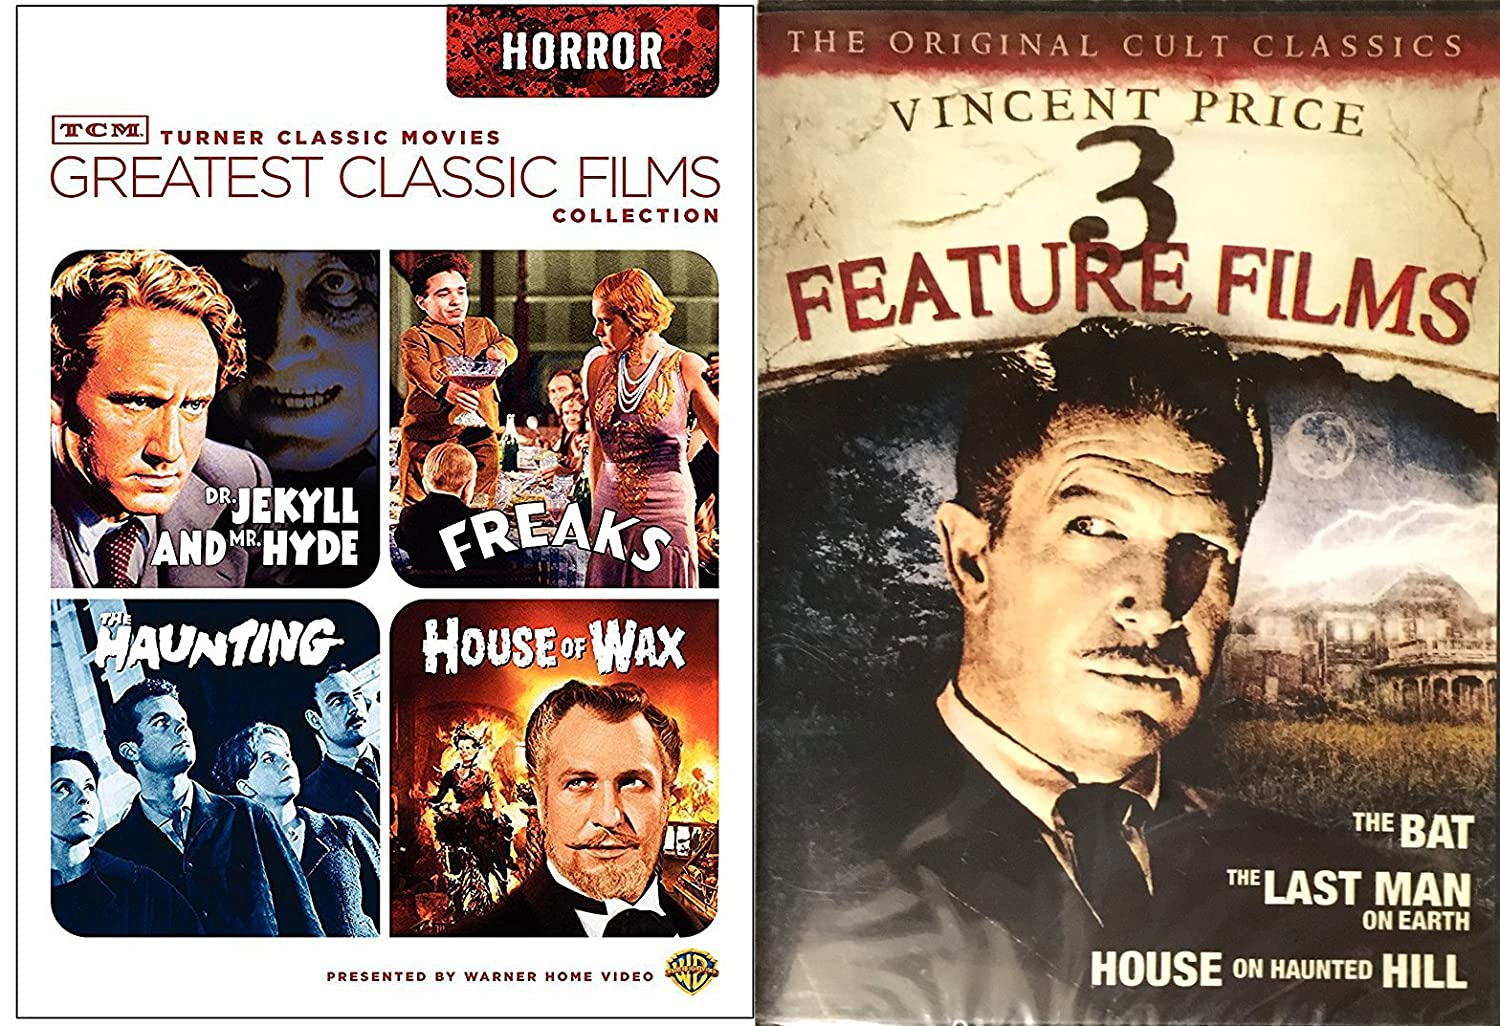 Amazon Com Horror Dvd Collection Vincent Price The House On Haunted Hill The Bat The Last Man On Earth Tcm Classic Films House Of Wax 1953 The Haunting 1963